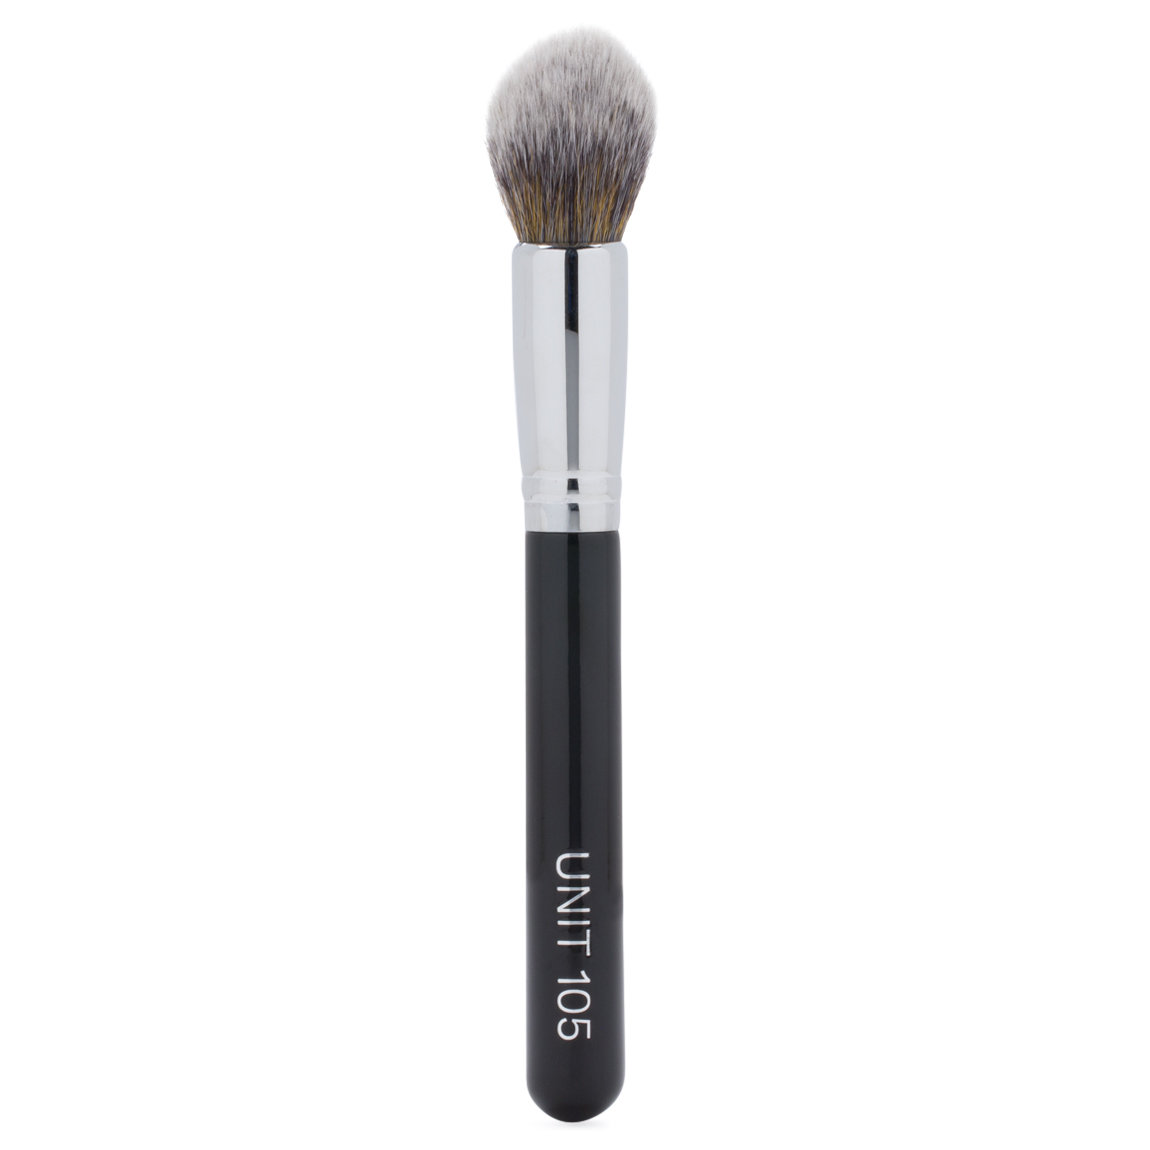 UNIT 105 Powder Brush